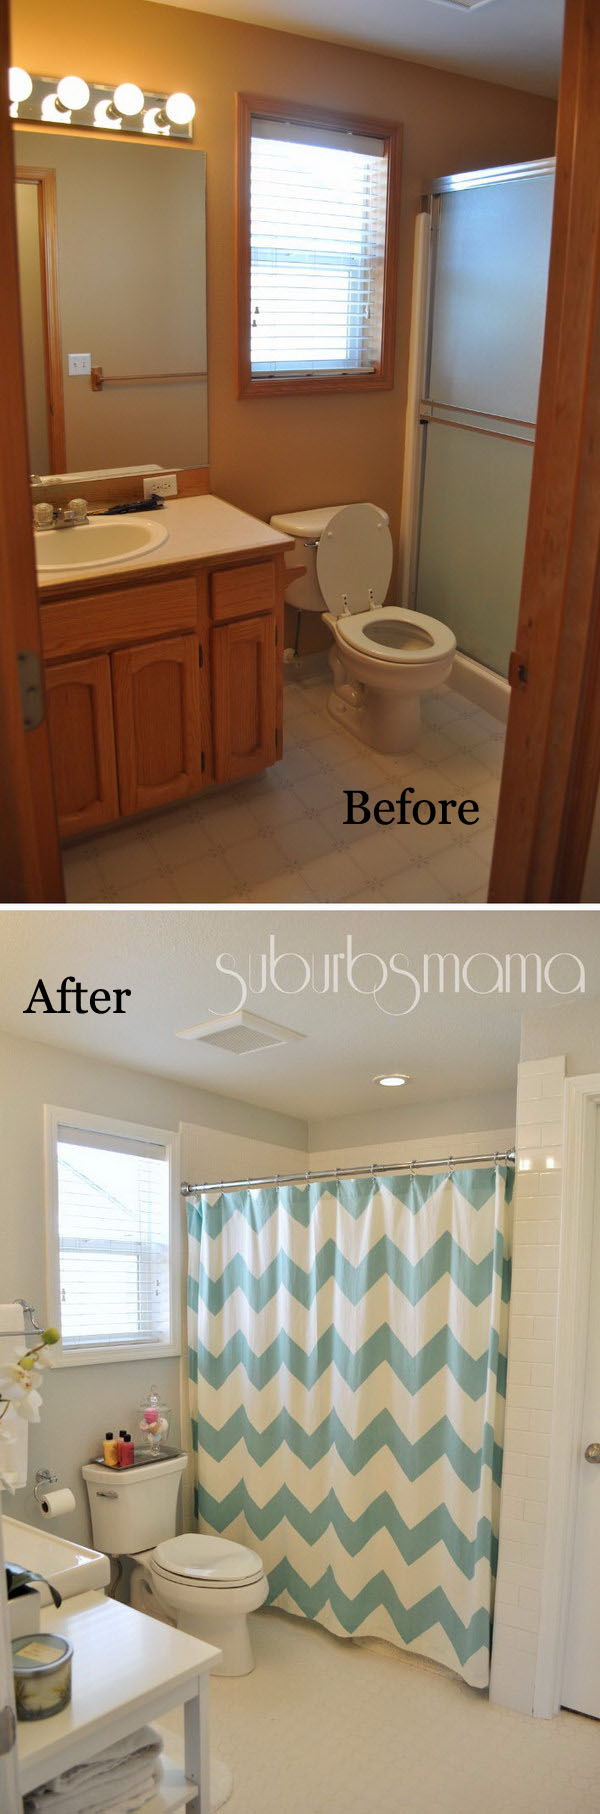 From Brown To White Color Small Bathroom Remodel Before After